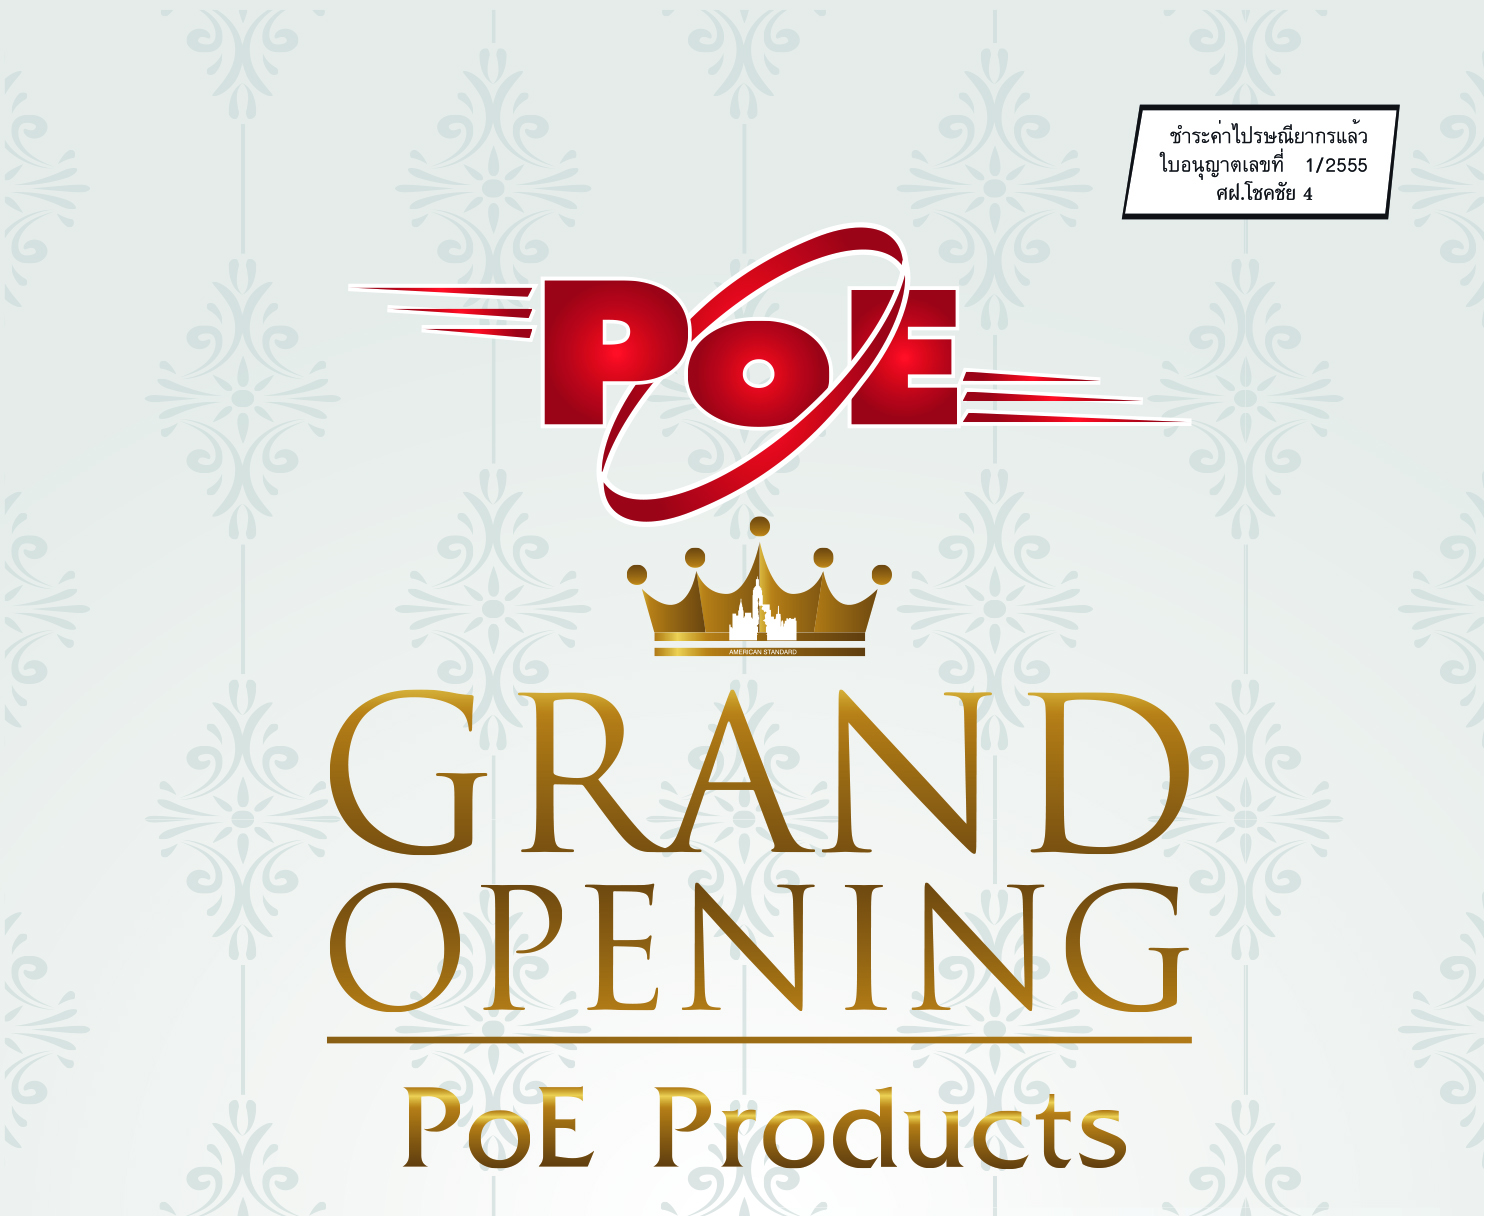 Grand Opening PoE Products